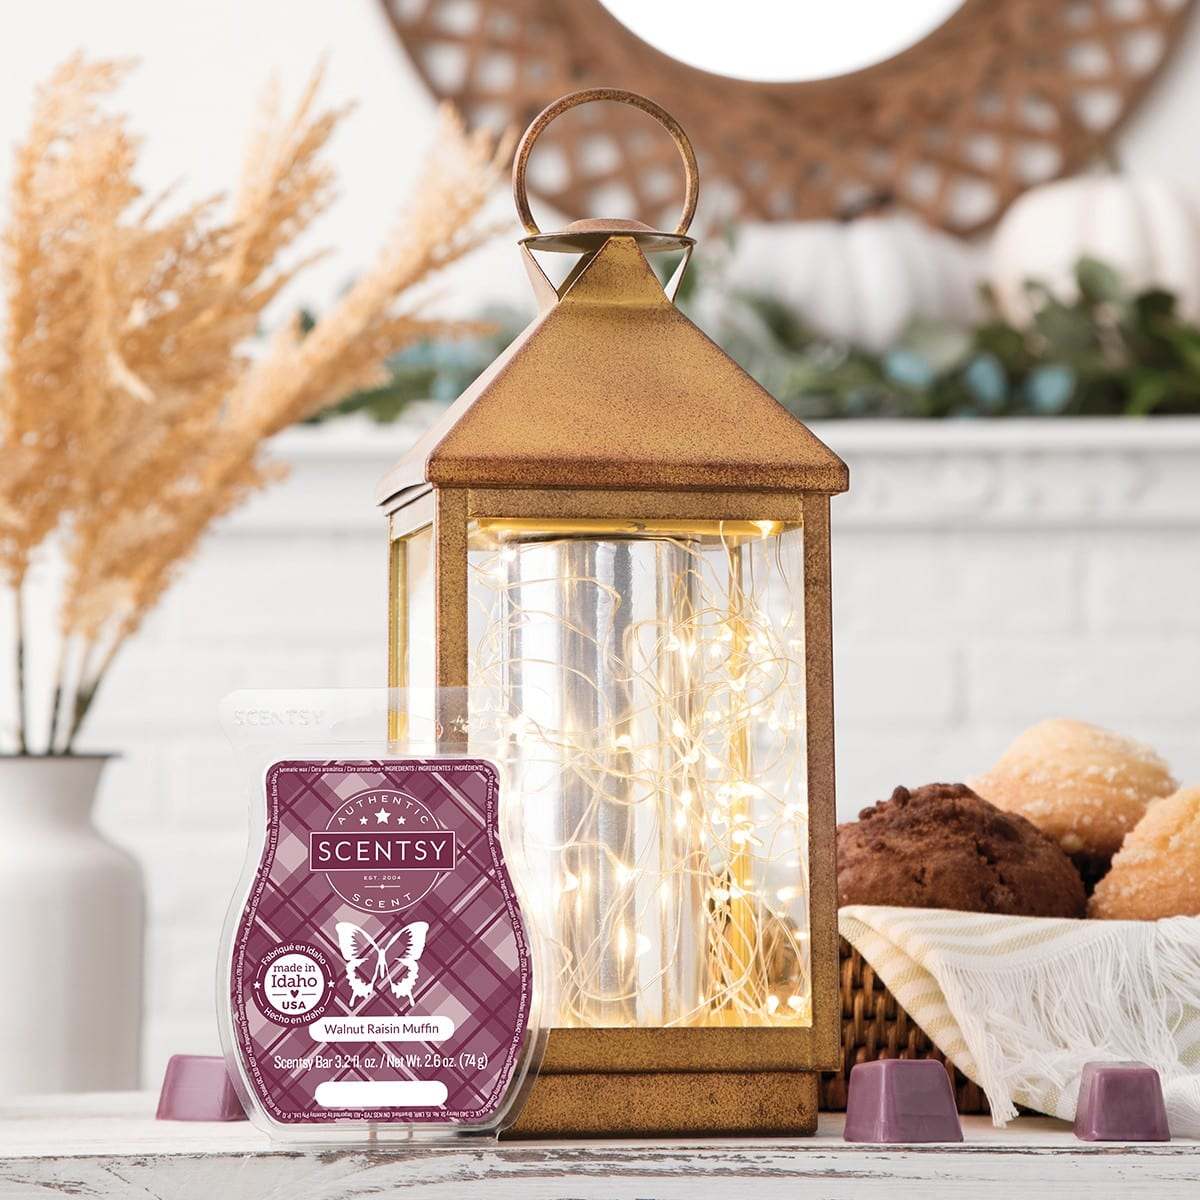 SCENTSY OCTOBER 2020 WARMER OF THE MONTH GLIMMER AND GLOW